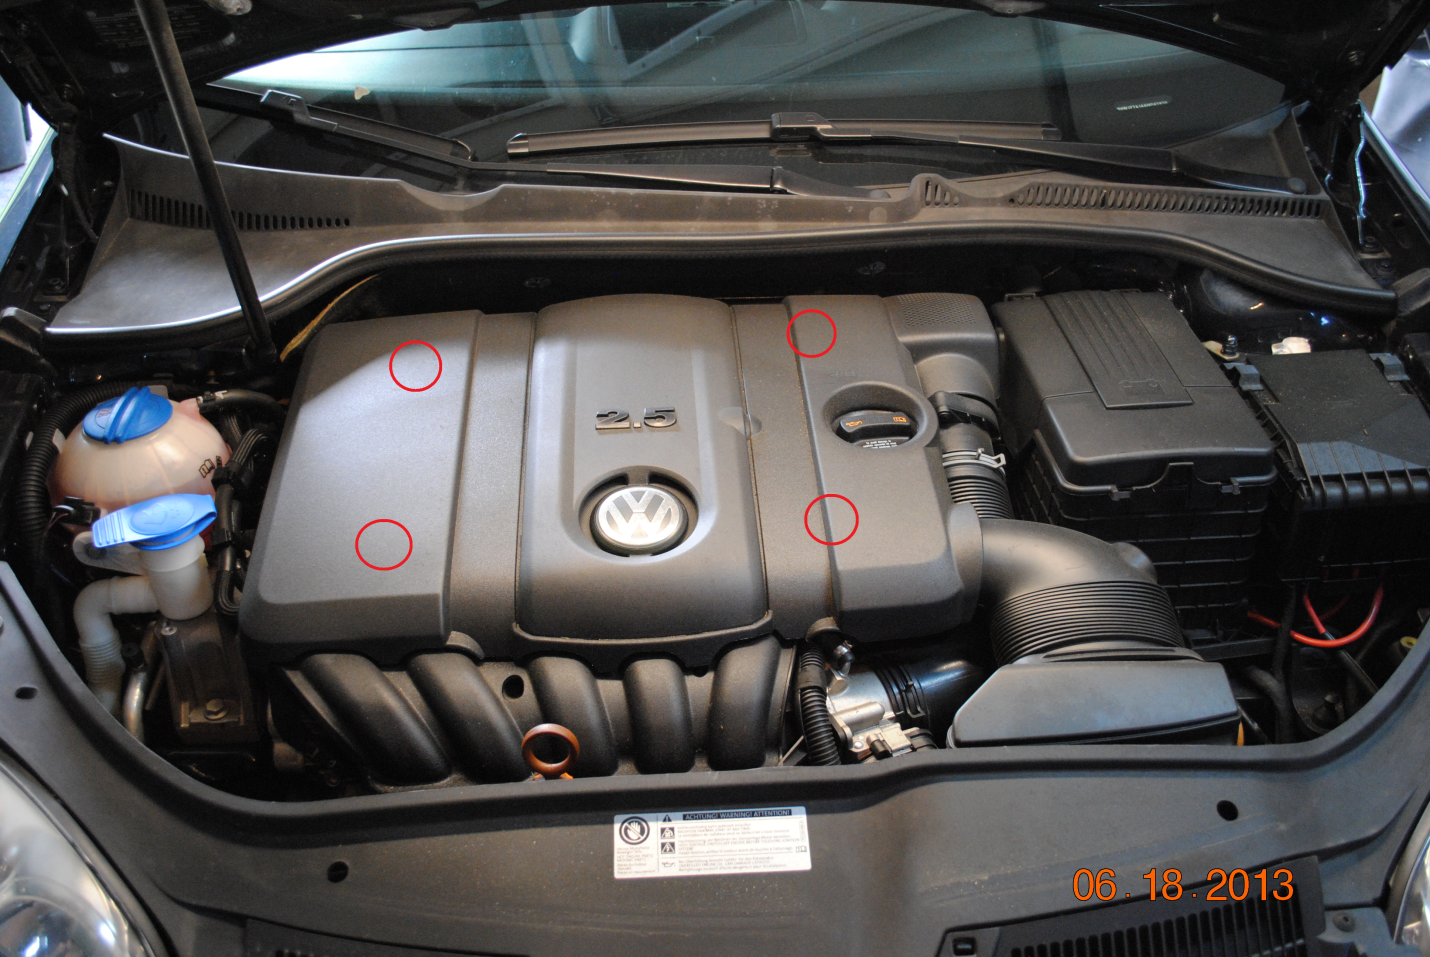 2011 vw jetta 5 cylinder engine diagram wiring diagram library vw 2 5l 5 cylinder valve cover diy and info articles deutsche audi 5 cylinder engine 2011 vw jetta 5 cylinder engine diagram